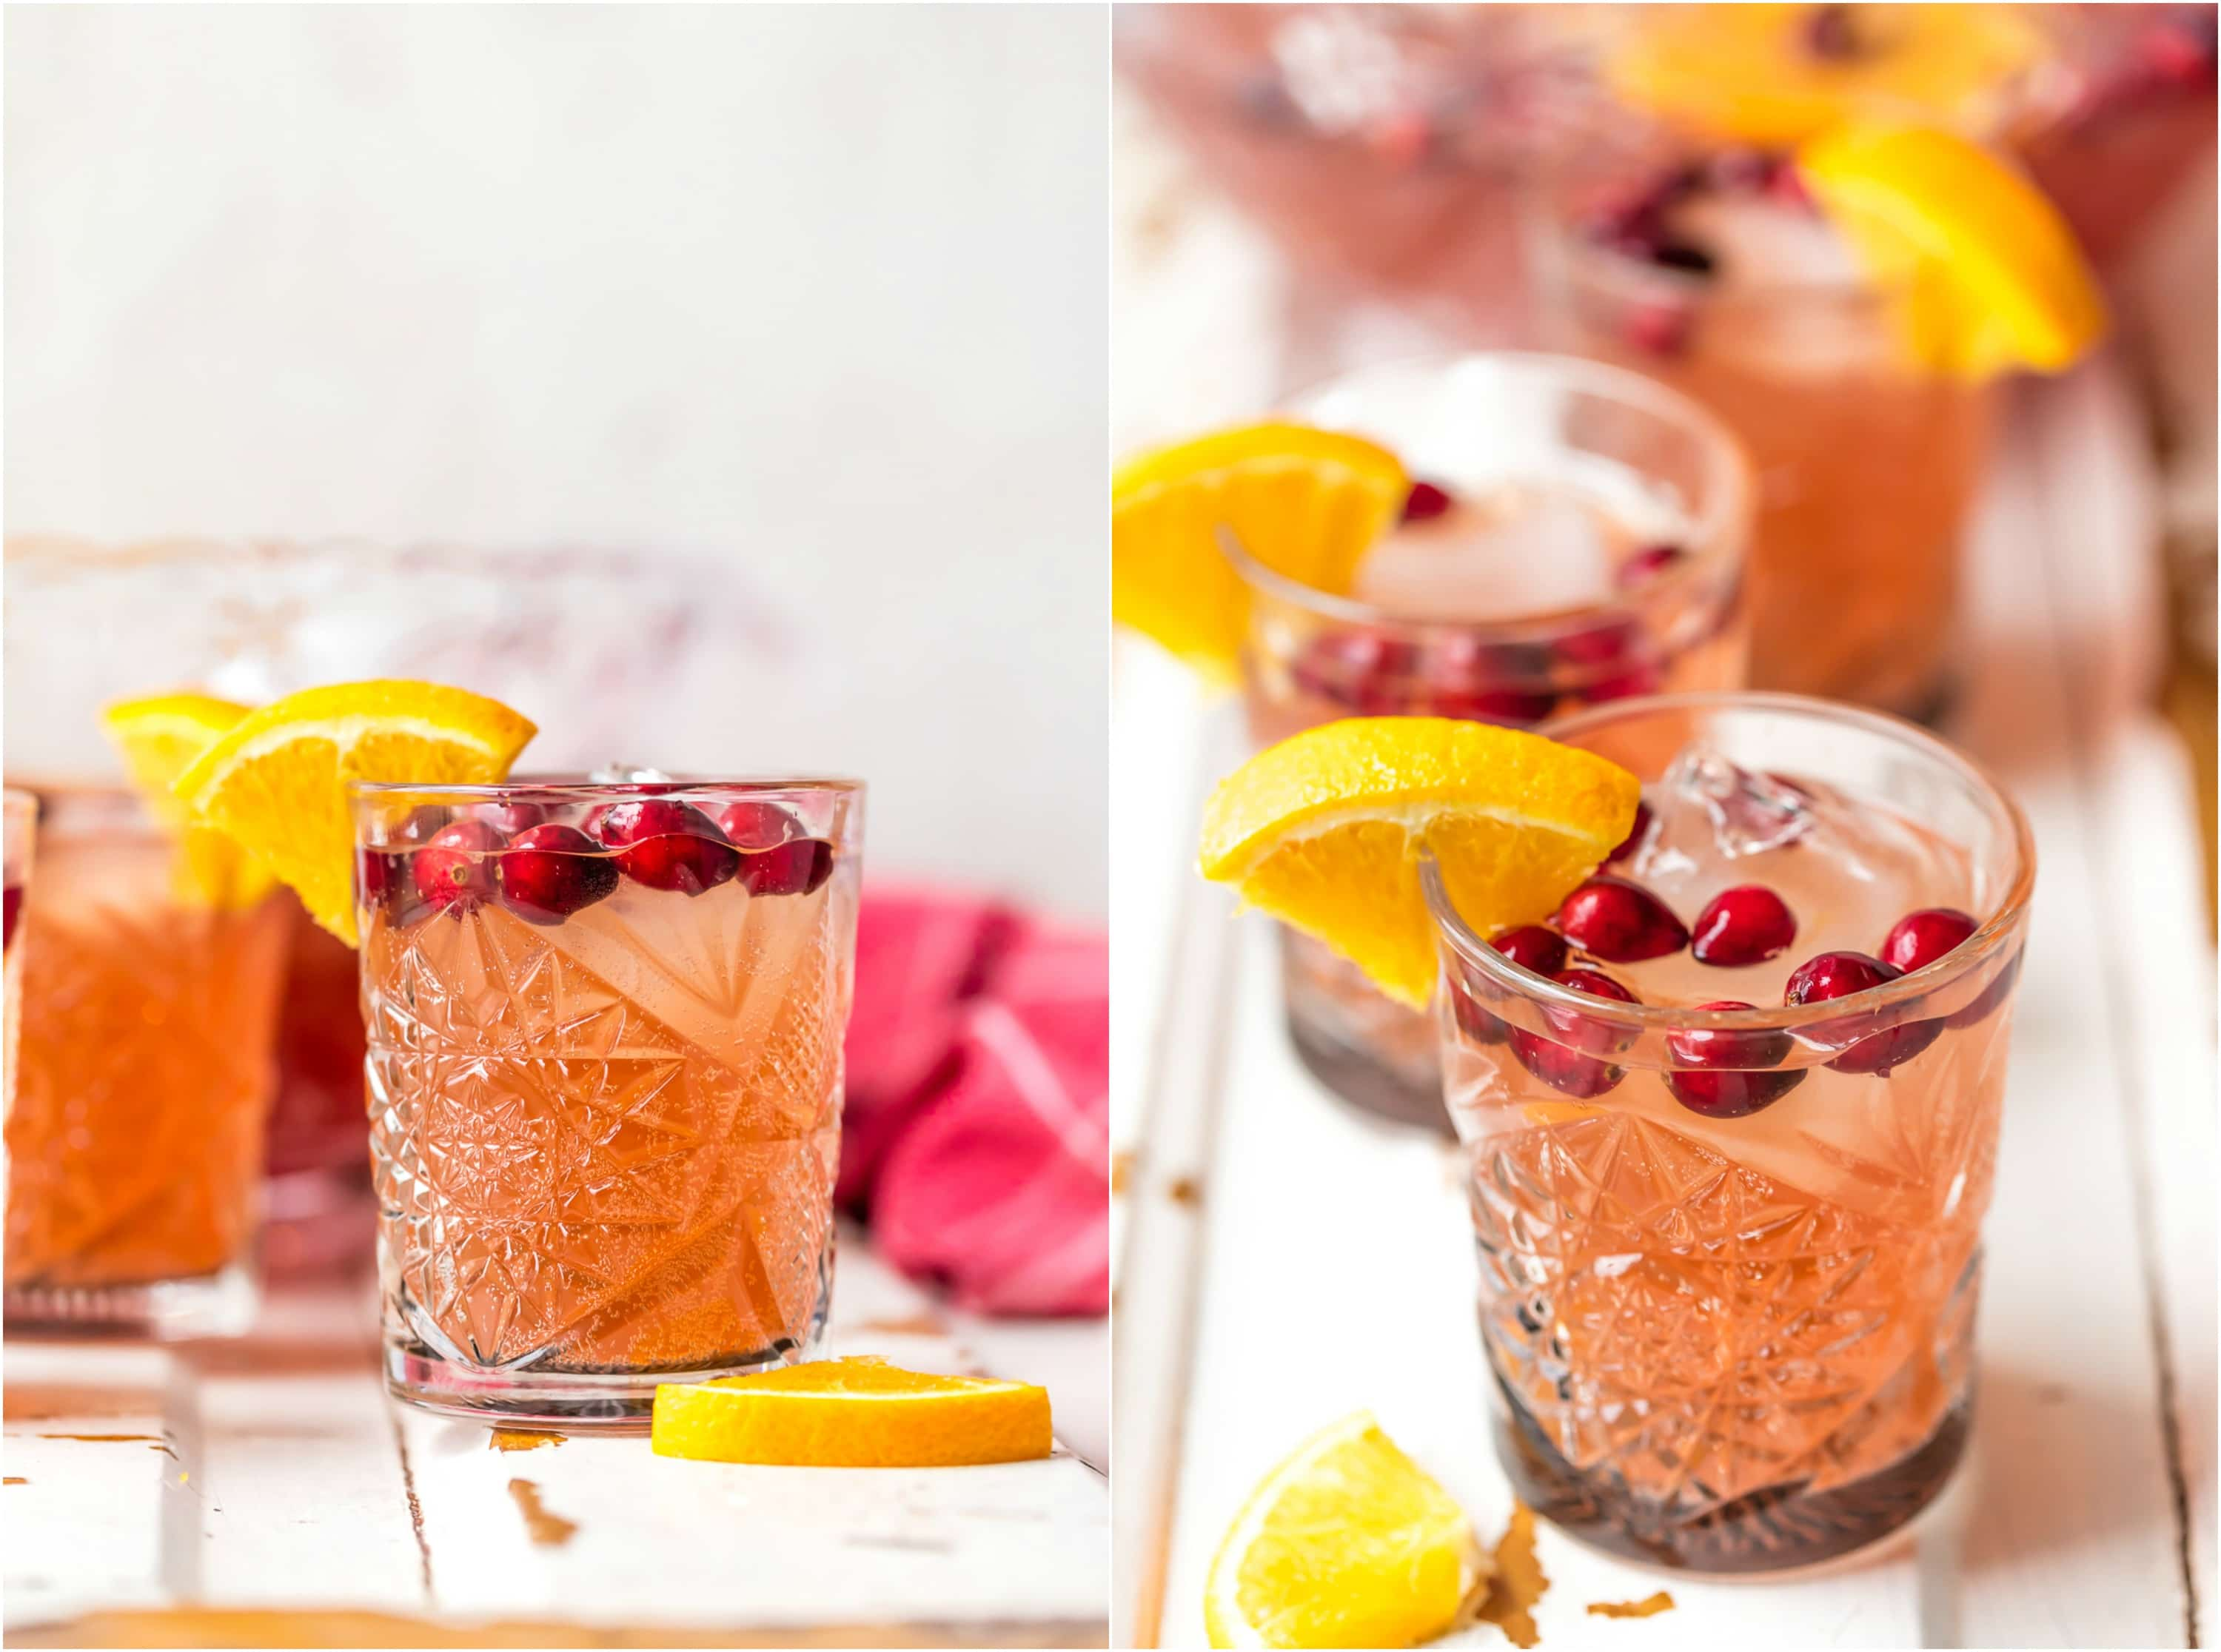 Holiday Punch is our favorite EASY PUNCH RECIPE perfect for Thanksgiving or Christmas! This Vodka punch is made with Cranberry Juice, Orange Juice, Ginger Ale, Sparkling Cider and more! You can pour in the Vodka or make it your new Non Alcoholic Christmas Punch Recipe. One of our very favorite Holiday Punch Recipes.